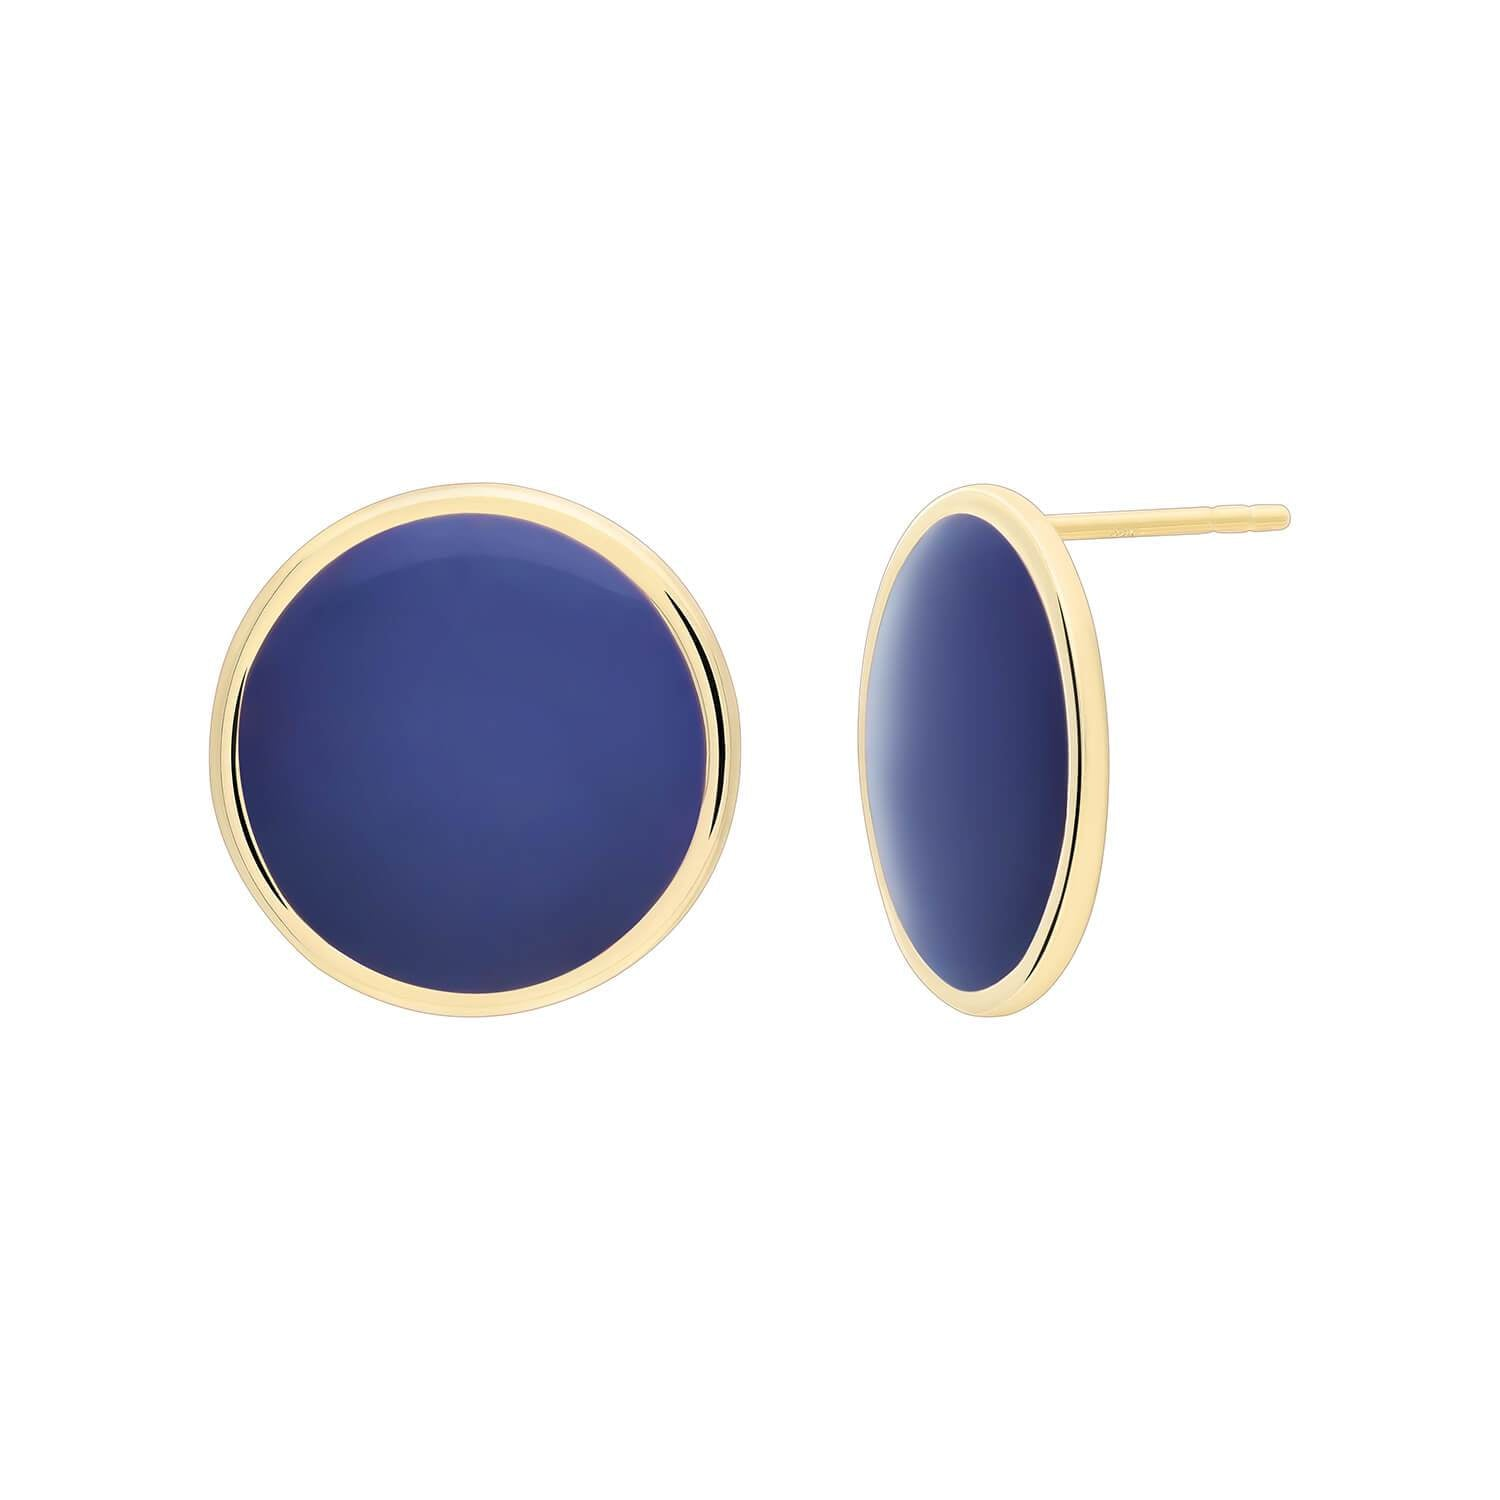 Gold Stud Earrings with Navy Enamel